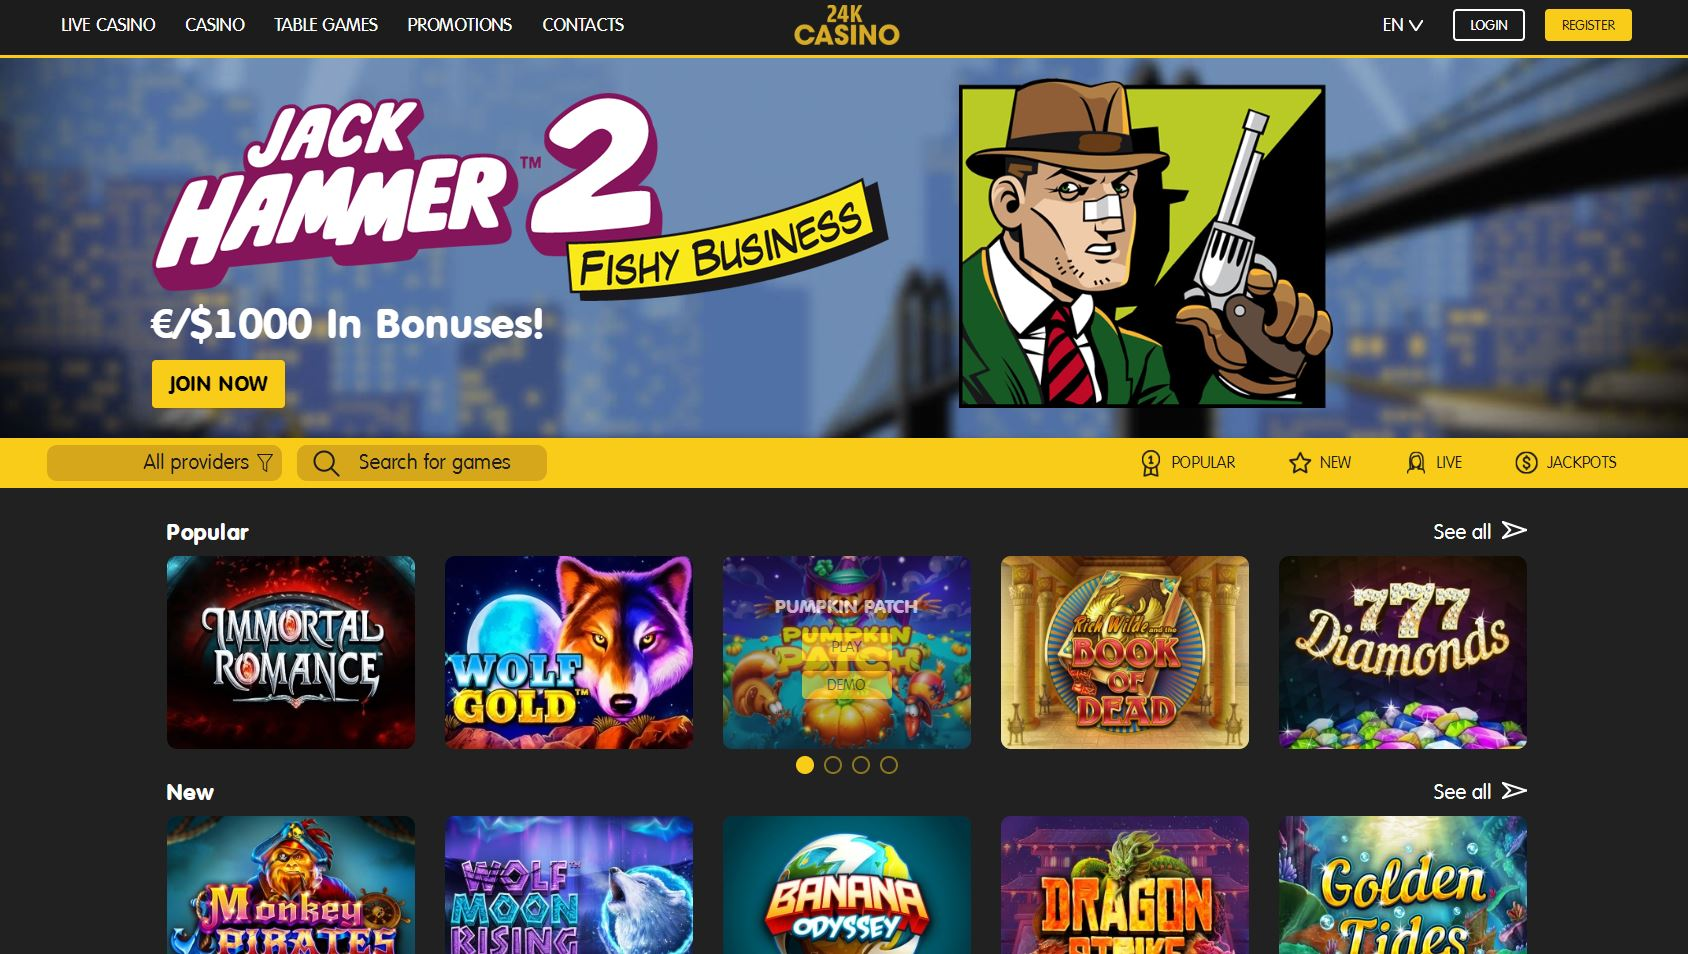 Home Page of 24k Casino